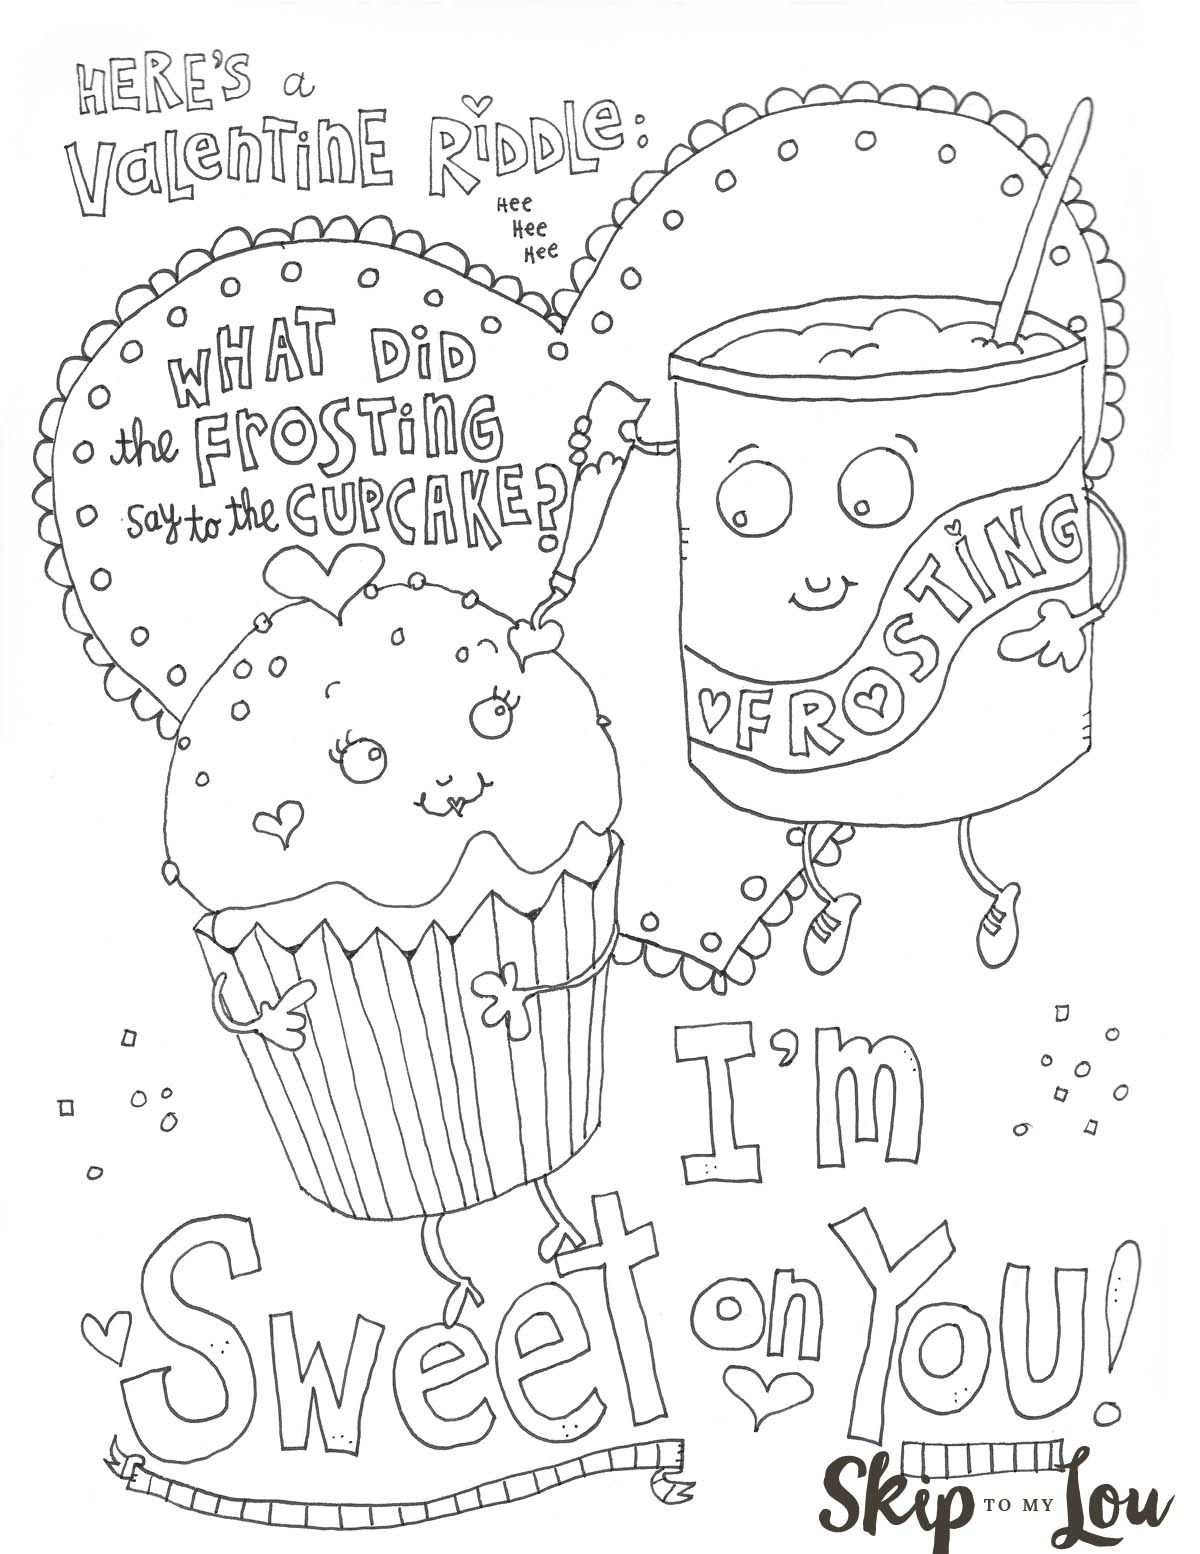 Free Printable Sweet On You Valentine Coloring Sheet An Easy Craft Or Activity For Kids And